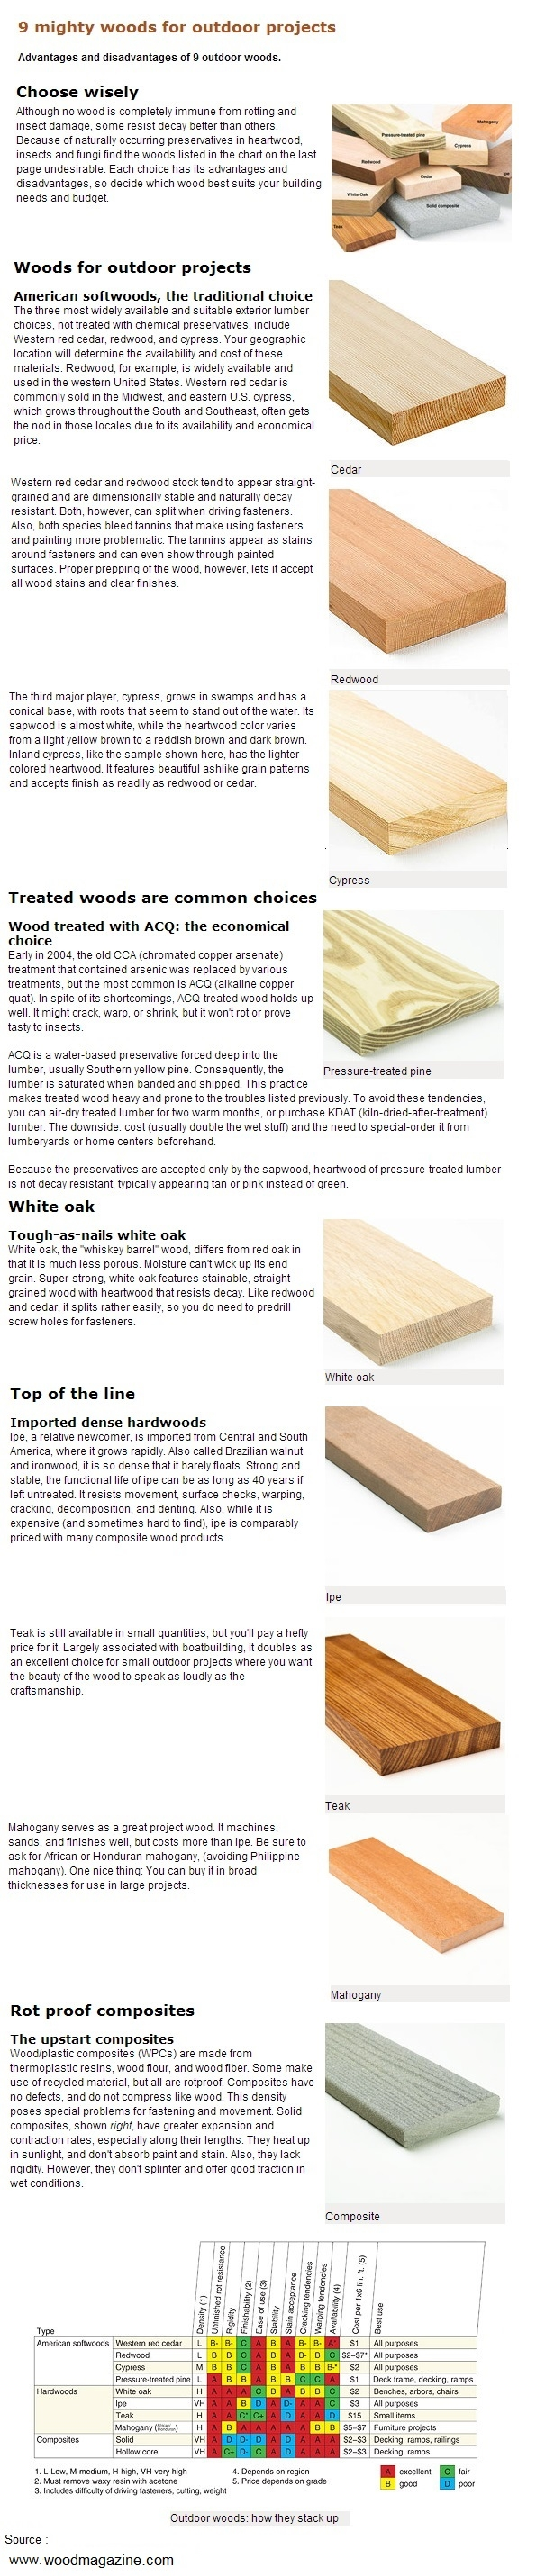 9 mighty woods for outdoor projects